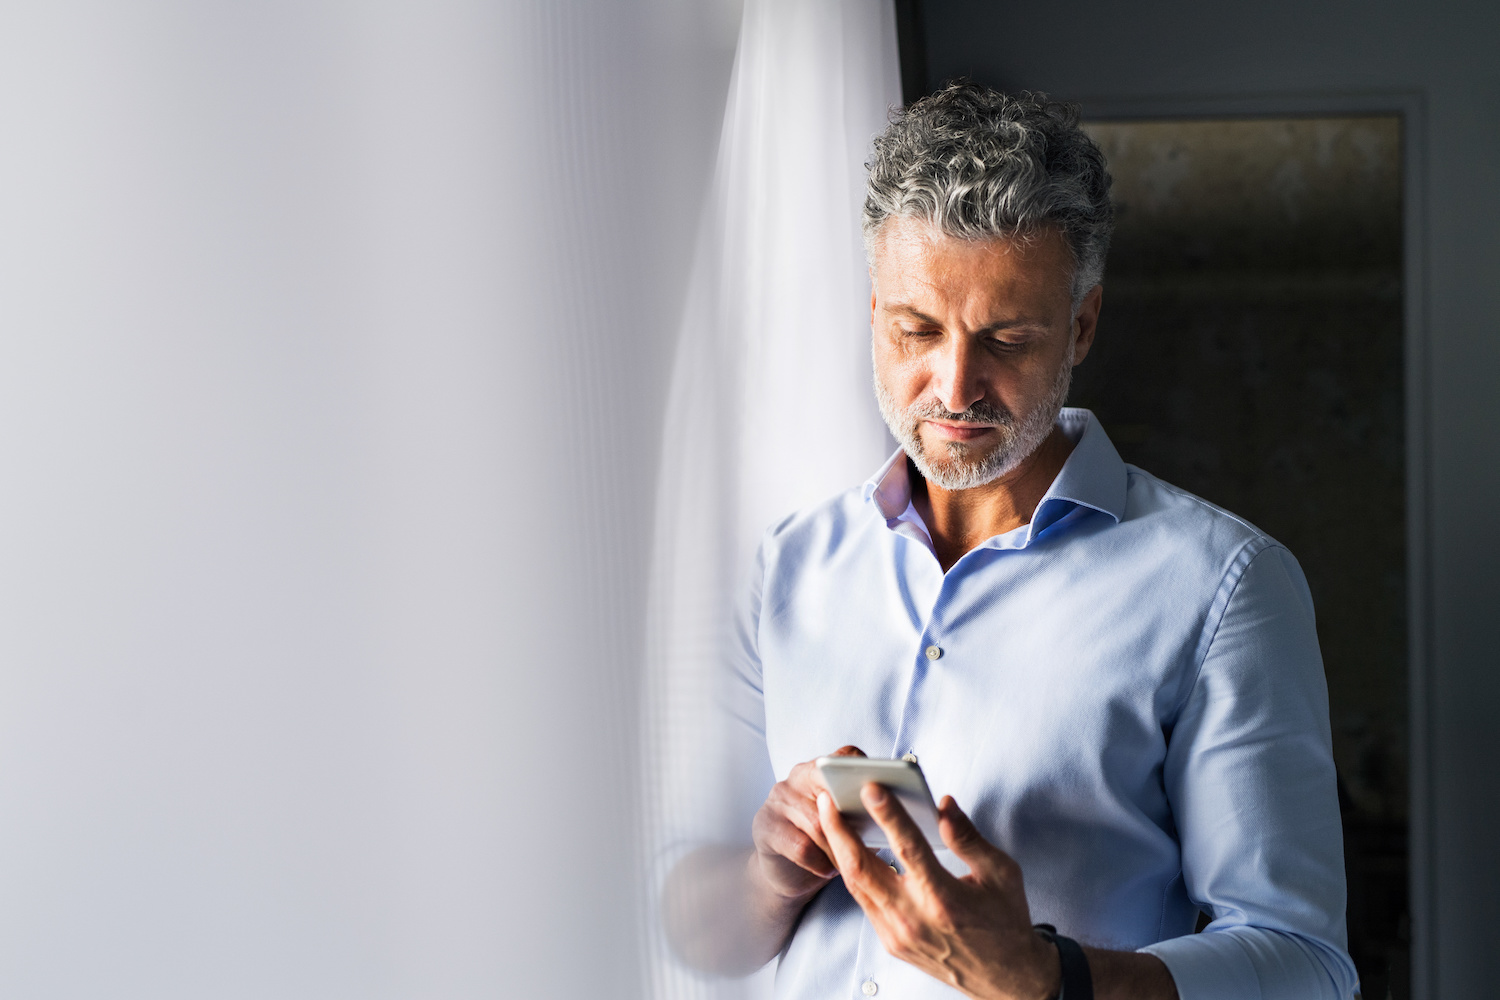 Mature businessman with smartphone in a hotel room. Handsome man standing at the window, texting. Close up.